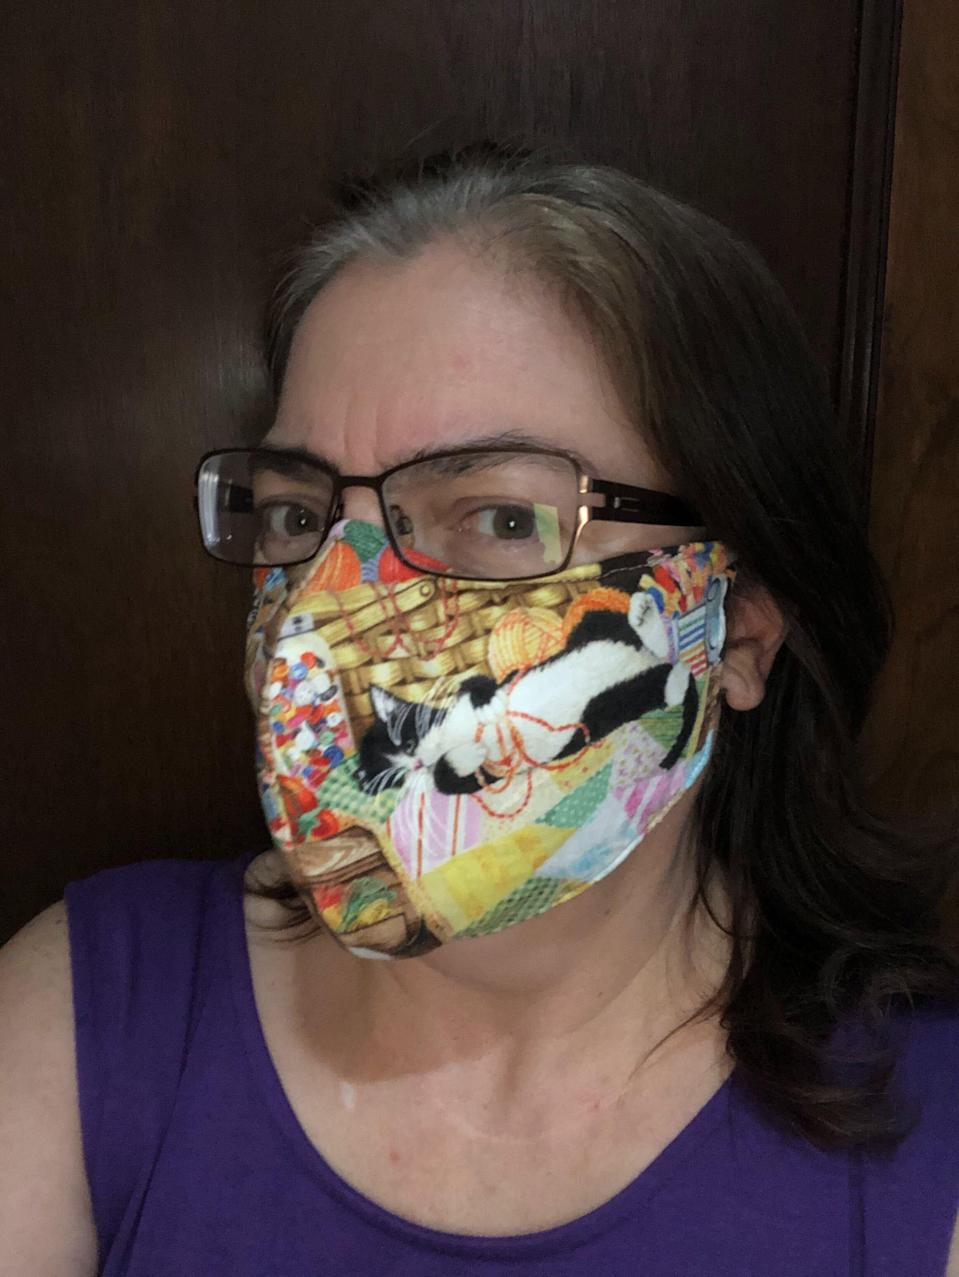 "<p>I'm a seamstress sometimes, so I jumped at the chance to make my own mask back in March. I used the <a href=""https://www.youtube.com/watch?v=pbqkLcPHhcQ&feature=youtu.be"" rel=""nofollow noopener"" target=""_blank"" data-ylk=""slk:directions"" class=""link rapid-noclick-resp"">directions</a> from the folks at The Fabric Patch in Ephrata, Washington, who coordinated and inspired the production of 167,000 masks for health care workers and health care offices. An engineer made this set of many-size <a href=""https://media.rainpos.com/220/jessemask.pdf"" rel=""nofollow noopener"" target=""_blank"" data-ylk=""slk:patterns"" class=""link rapid-noclick-resp"">patterns</a>, which I've used for everyone in my family. Owner Cindi Rang has several great <a href=""https://www.youtube.com/watch?v=pbqkLcPHhcQ&feature=youtu.be"" rel=""nofollow noopener"" target=""_blank"" data-ylk=""slk:videos"" class=""link rapid-noclick-resp"">videos</a> as well as lists of <a href=""http://www.fabricpatch.net/face-masks-for-covid-19-relief.htm"" rel=""nofollow noopener"" target=""_blank"" data-ylk=""slk:recommended materials"" class=""link rapid-noclick-resp"">recommended materials</a>. She suggested a nonwoven interfacing for the lining, which means I don't have to change the filter, because it's built in. I tried to blow out a match and couldn't. No germs are getting out of there! <a href=""https://amzn.to/2WtLRPO"" rel=""nofollow noopener"" target=""_blank"" data-ylk=""slk:Iron-on Pellon"" class=""link rapid-noclick-resp"">Iron-on Pellon</a> works great since it will keep the inner lining stiff enough to not suck up against your mouth. You can also buy <a href=""https://amzn.to/2WrVfn6"" rel=""nofollow noopener"" target=""_blank"" data-ylk=""slk:nose wires"" class=""link rapid-noclick-resp"">nose wires</a> and <a href=""https://amzn.to/3jdY2Ko"" rel=""nofollow noopener"" target=""_blank"" data-ylk=""slk:thin elastic"" class=""link rapid-noclick-resp"">thin elastic</a> for the ear loops. —<em>Talley Sue Hohlfeld, copy director</em></p> <p>Pellon Fusible Interfacing, <a href=""https://amzn.to/2WtLRPO"" rel=""nofollow noopener"" target=""_blank"" data-ylk=""slk:$21 at Amazon"" class=""link rapid-noclick-resp""><strong>$21 at Amazon</strong></a> <br> Sinerixc Plastic White Twist Ties, <a href=""https://amzn.to/2WrVfn6"" rel=""nofollow noopener"" target=""_blank"" data-ylk=""slk:$7 at Amazon"" class=""link rapid-noclick-resp""><strong>$7 at Amazon</strong></a><br> Mandala Crafts Flat Elastic Band, <a href=""https://amzn.to/3jdY2Ko"" rel=""nofollow noopener"" target=""_blank"" data-ylk=""slk:$10 at Amazon"" class=""link rapid-noclick-resp""><strong>$10 at Amazon</strong></a></p>"